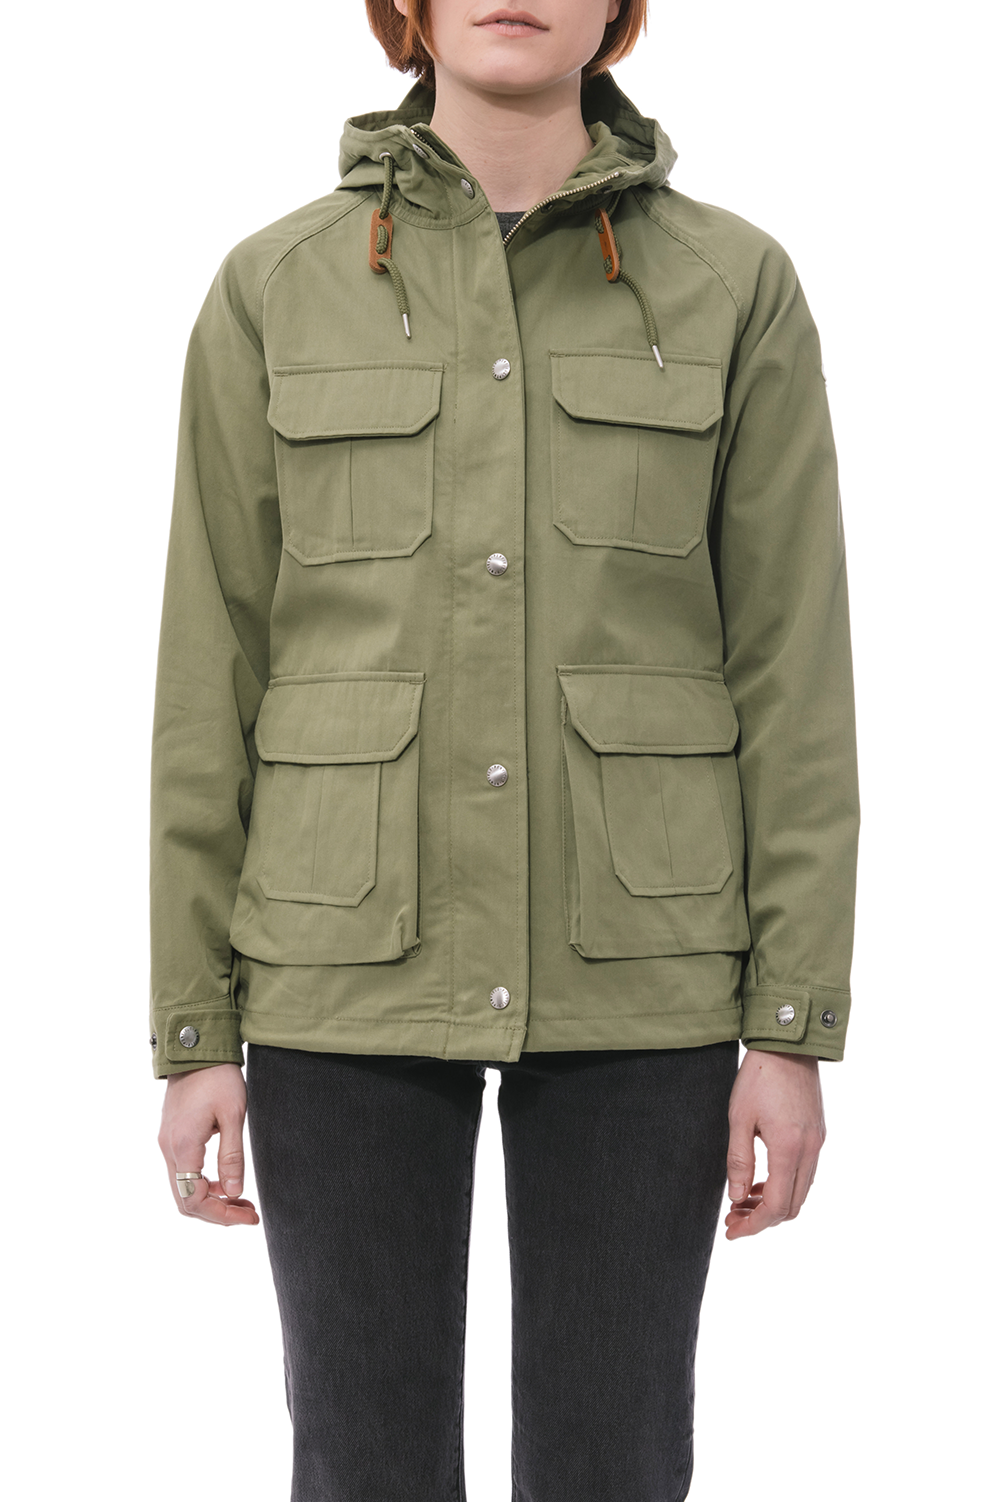 Vassan Jacket in Olive - Philistine